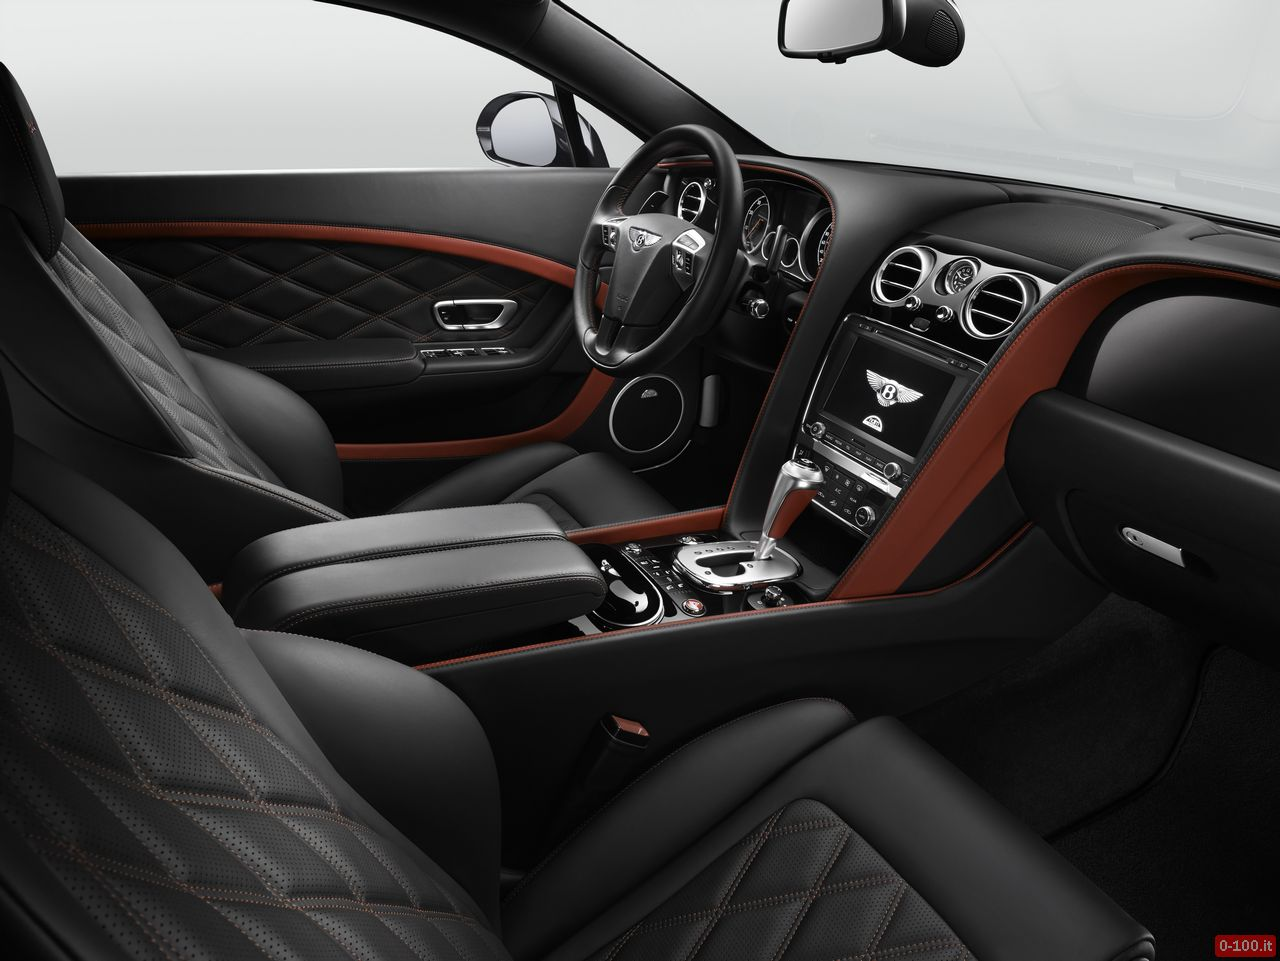 geneve-2014-bentley-continental-gt-speed-2015-635-hp-cv-prezzo-price-0-100_13